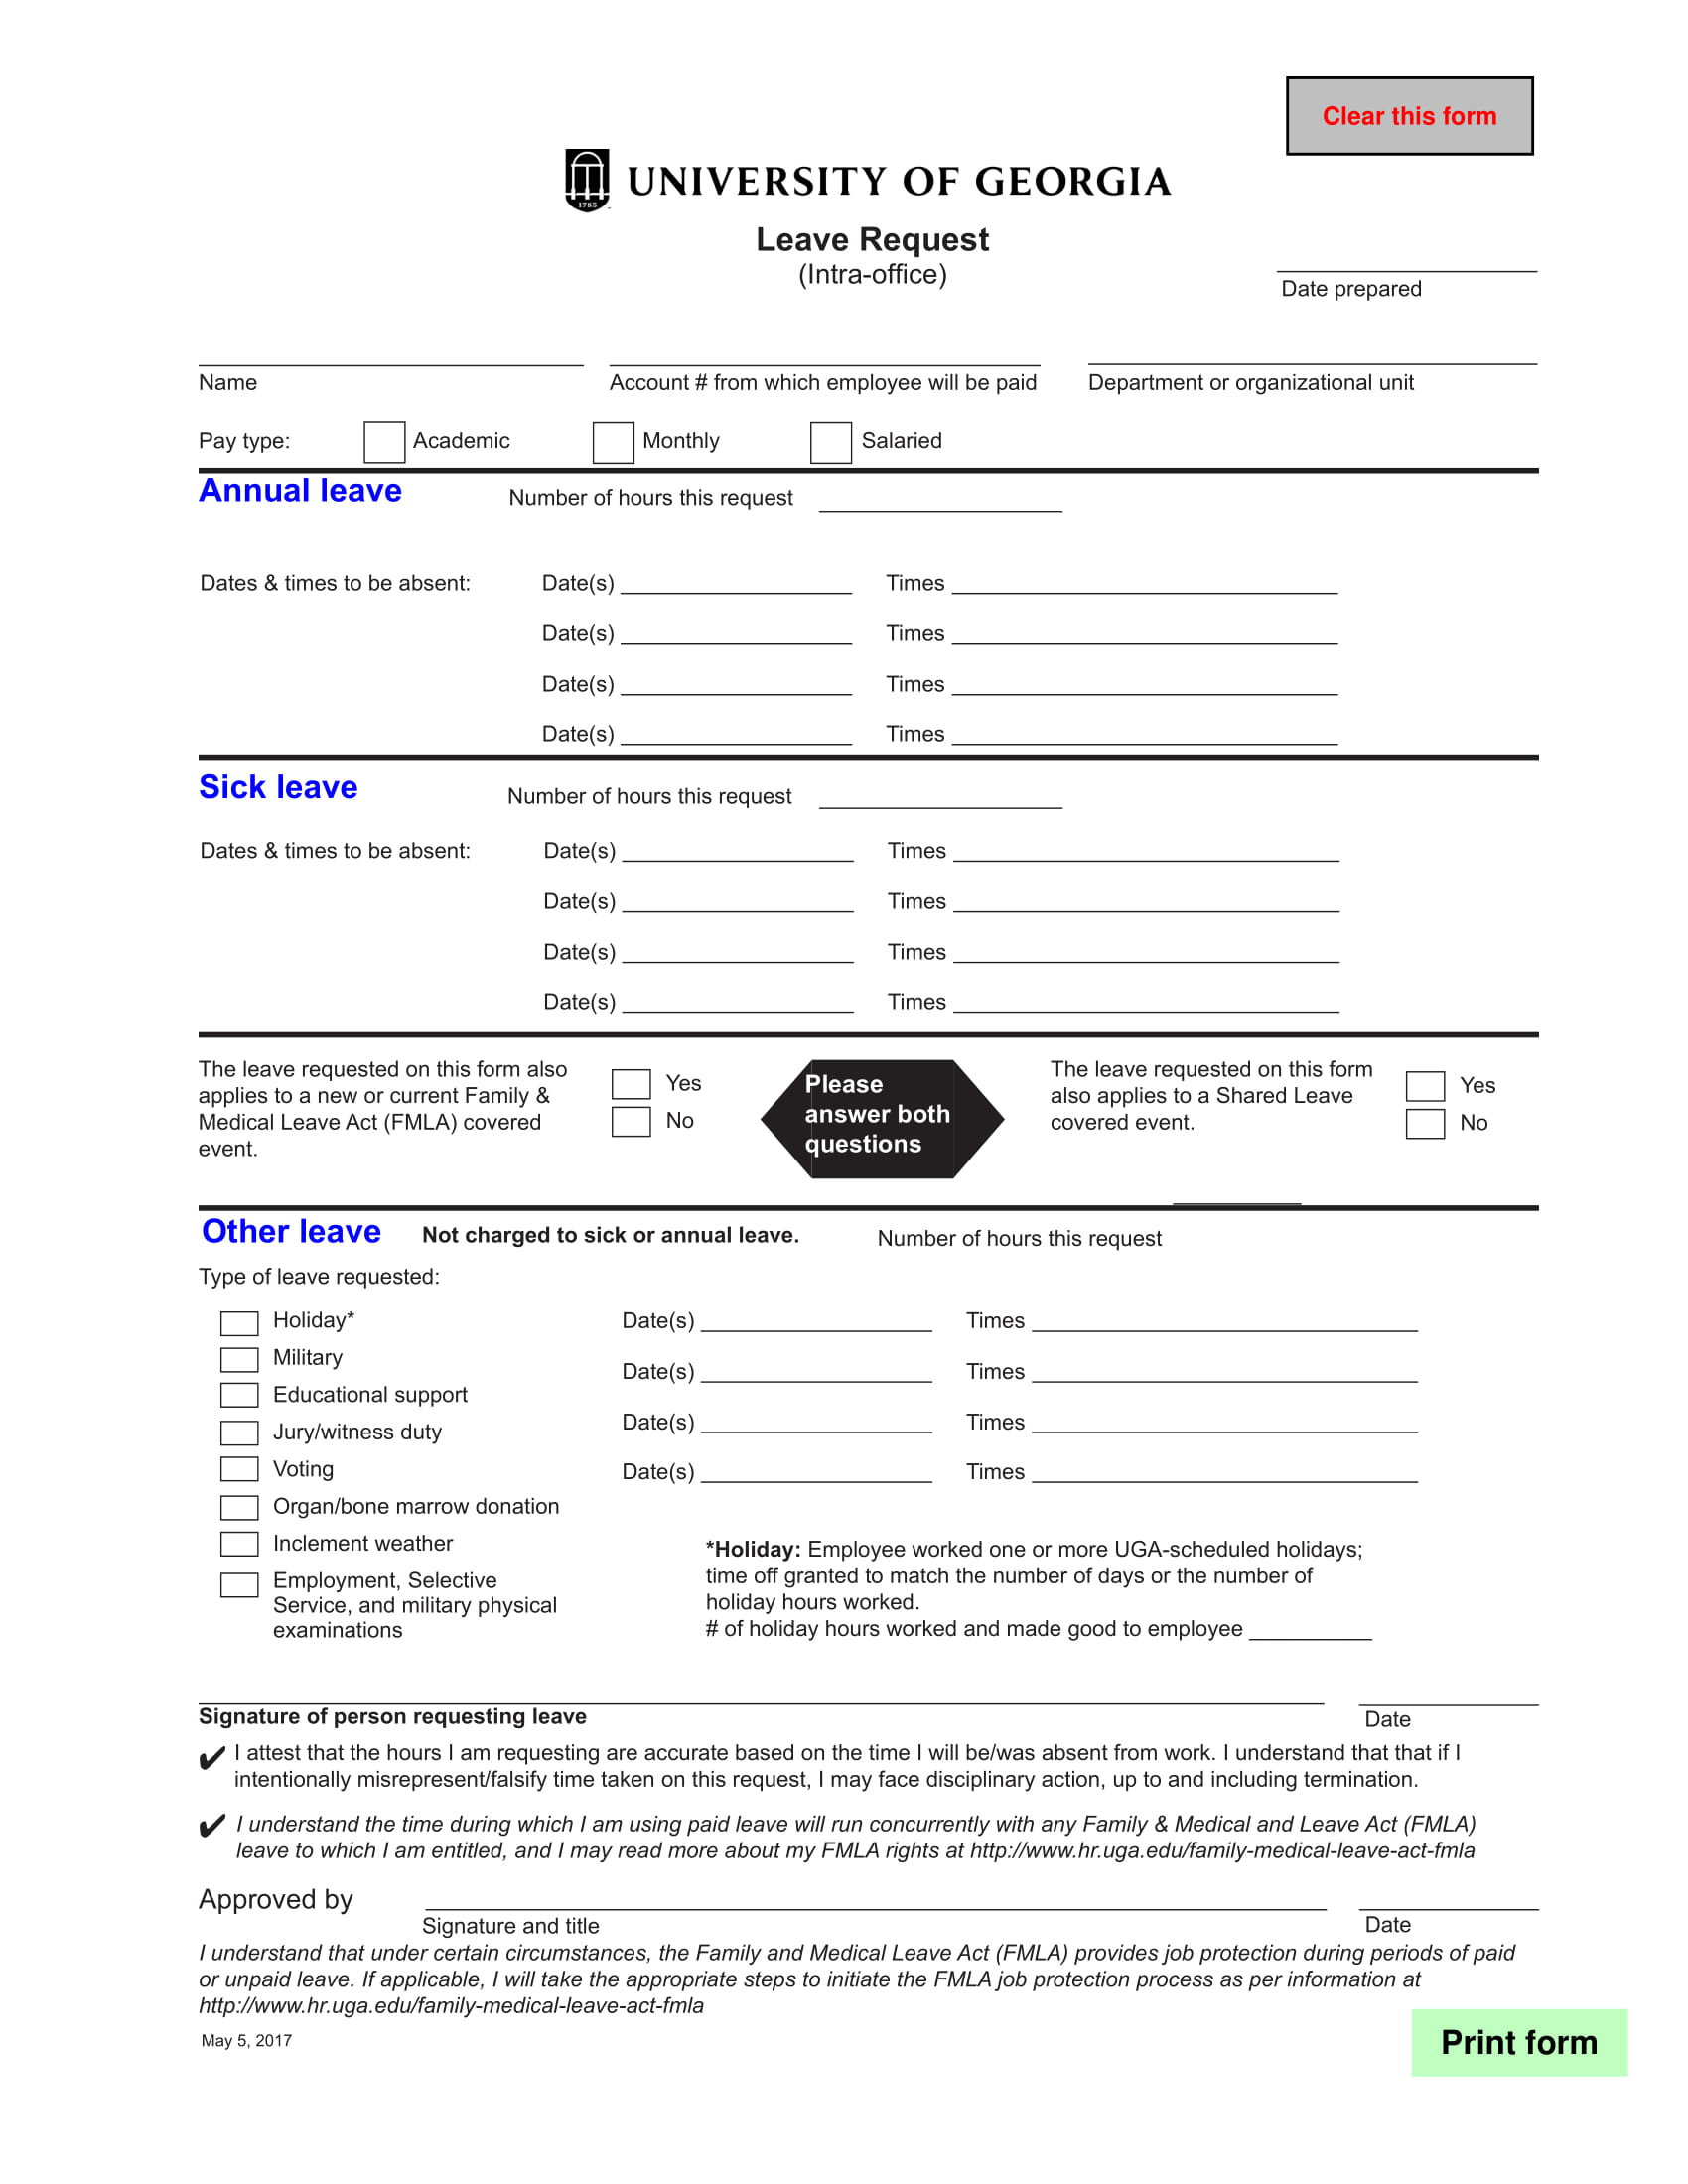 Leave Request Form Example For Vacation